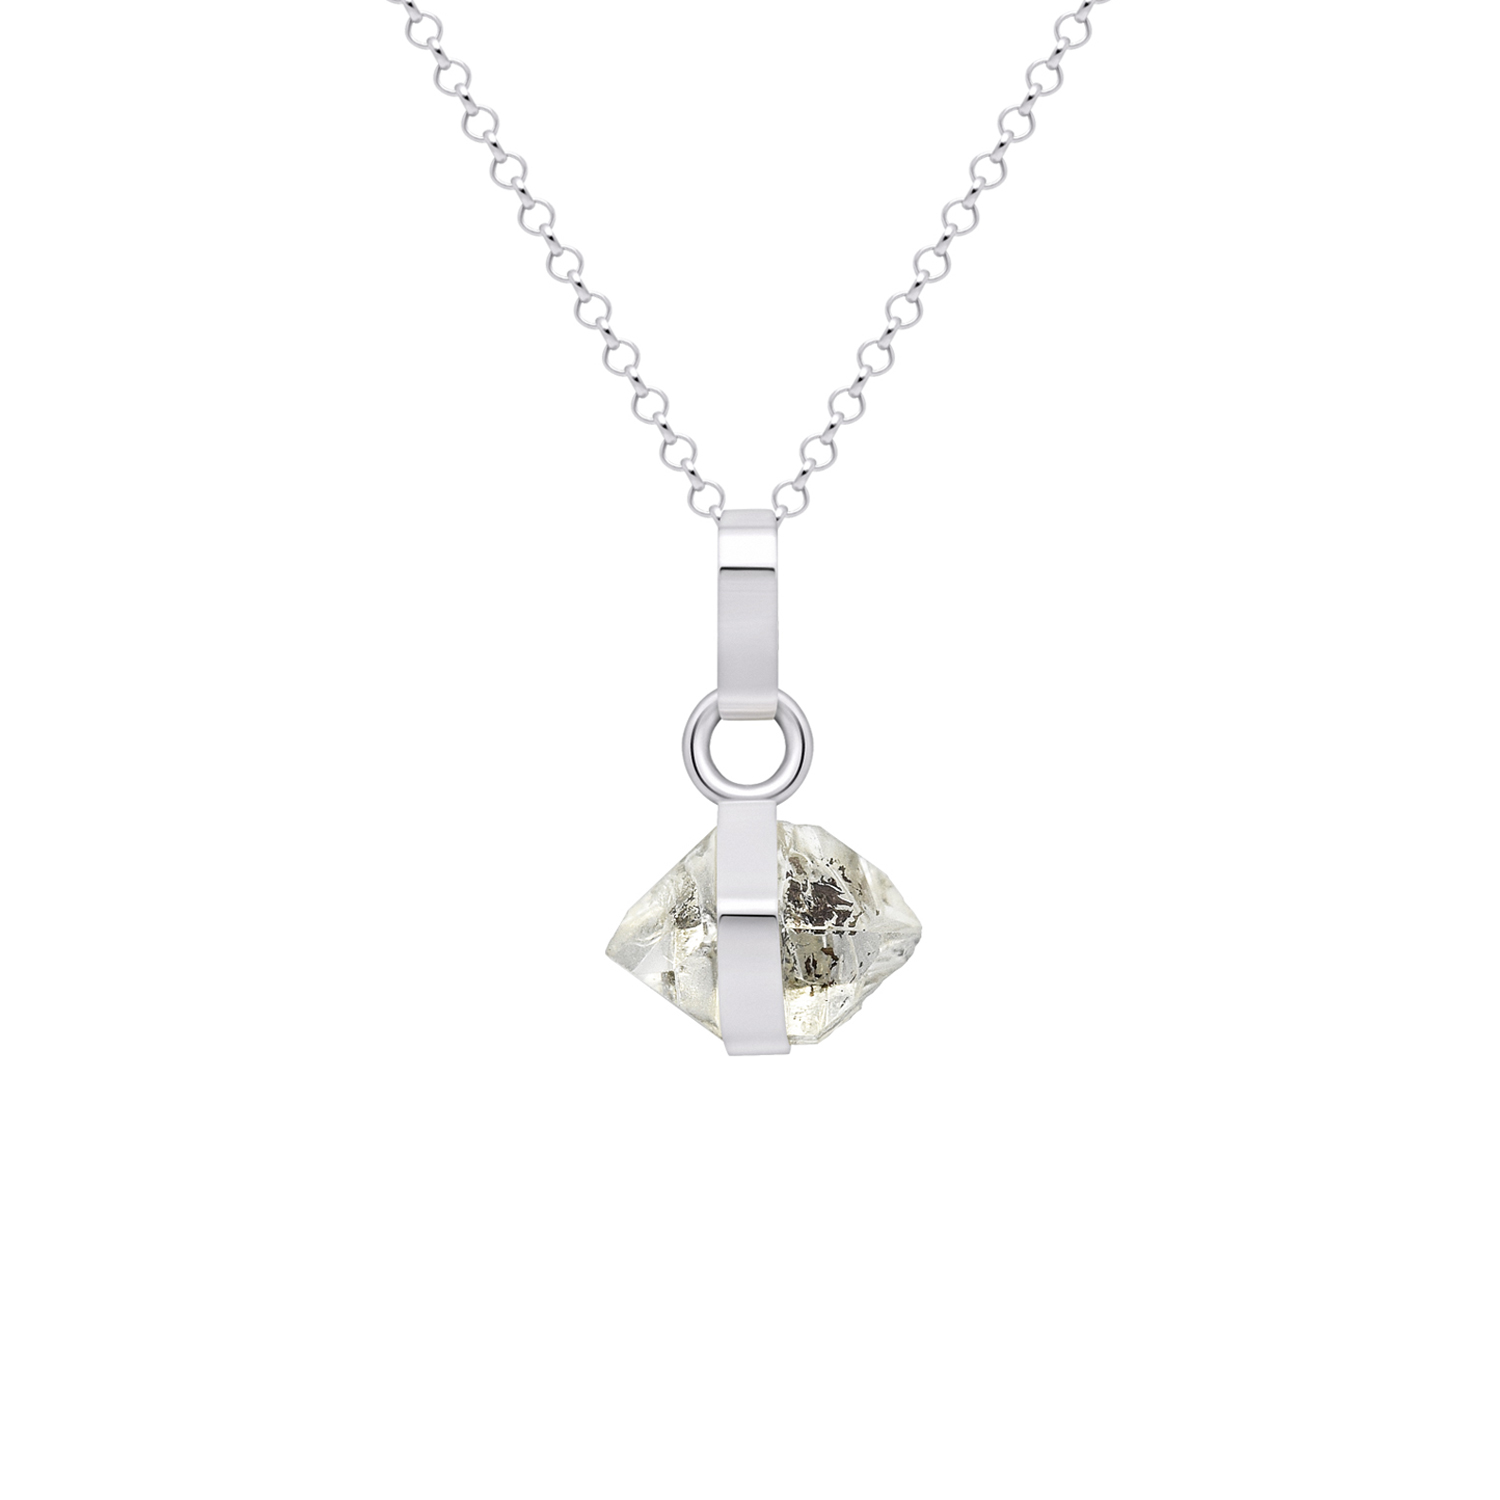 herkimer women Find great deals on ebay for herkimer necklaces shop with confidence.